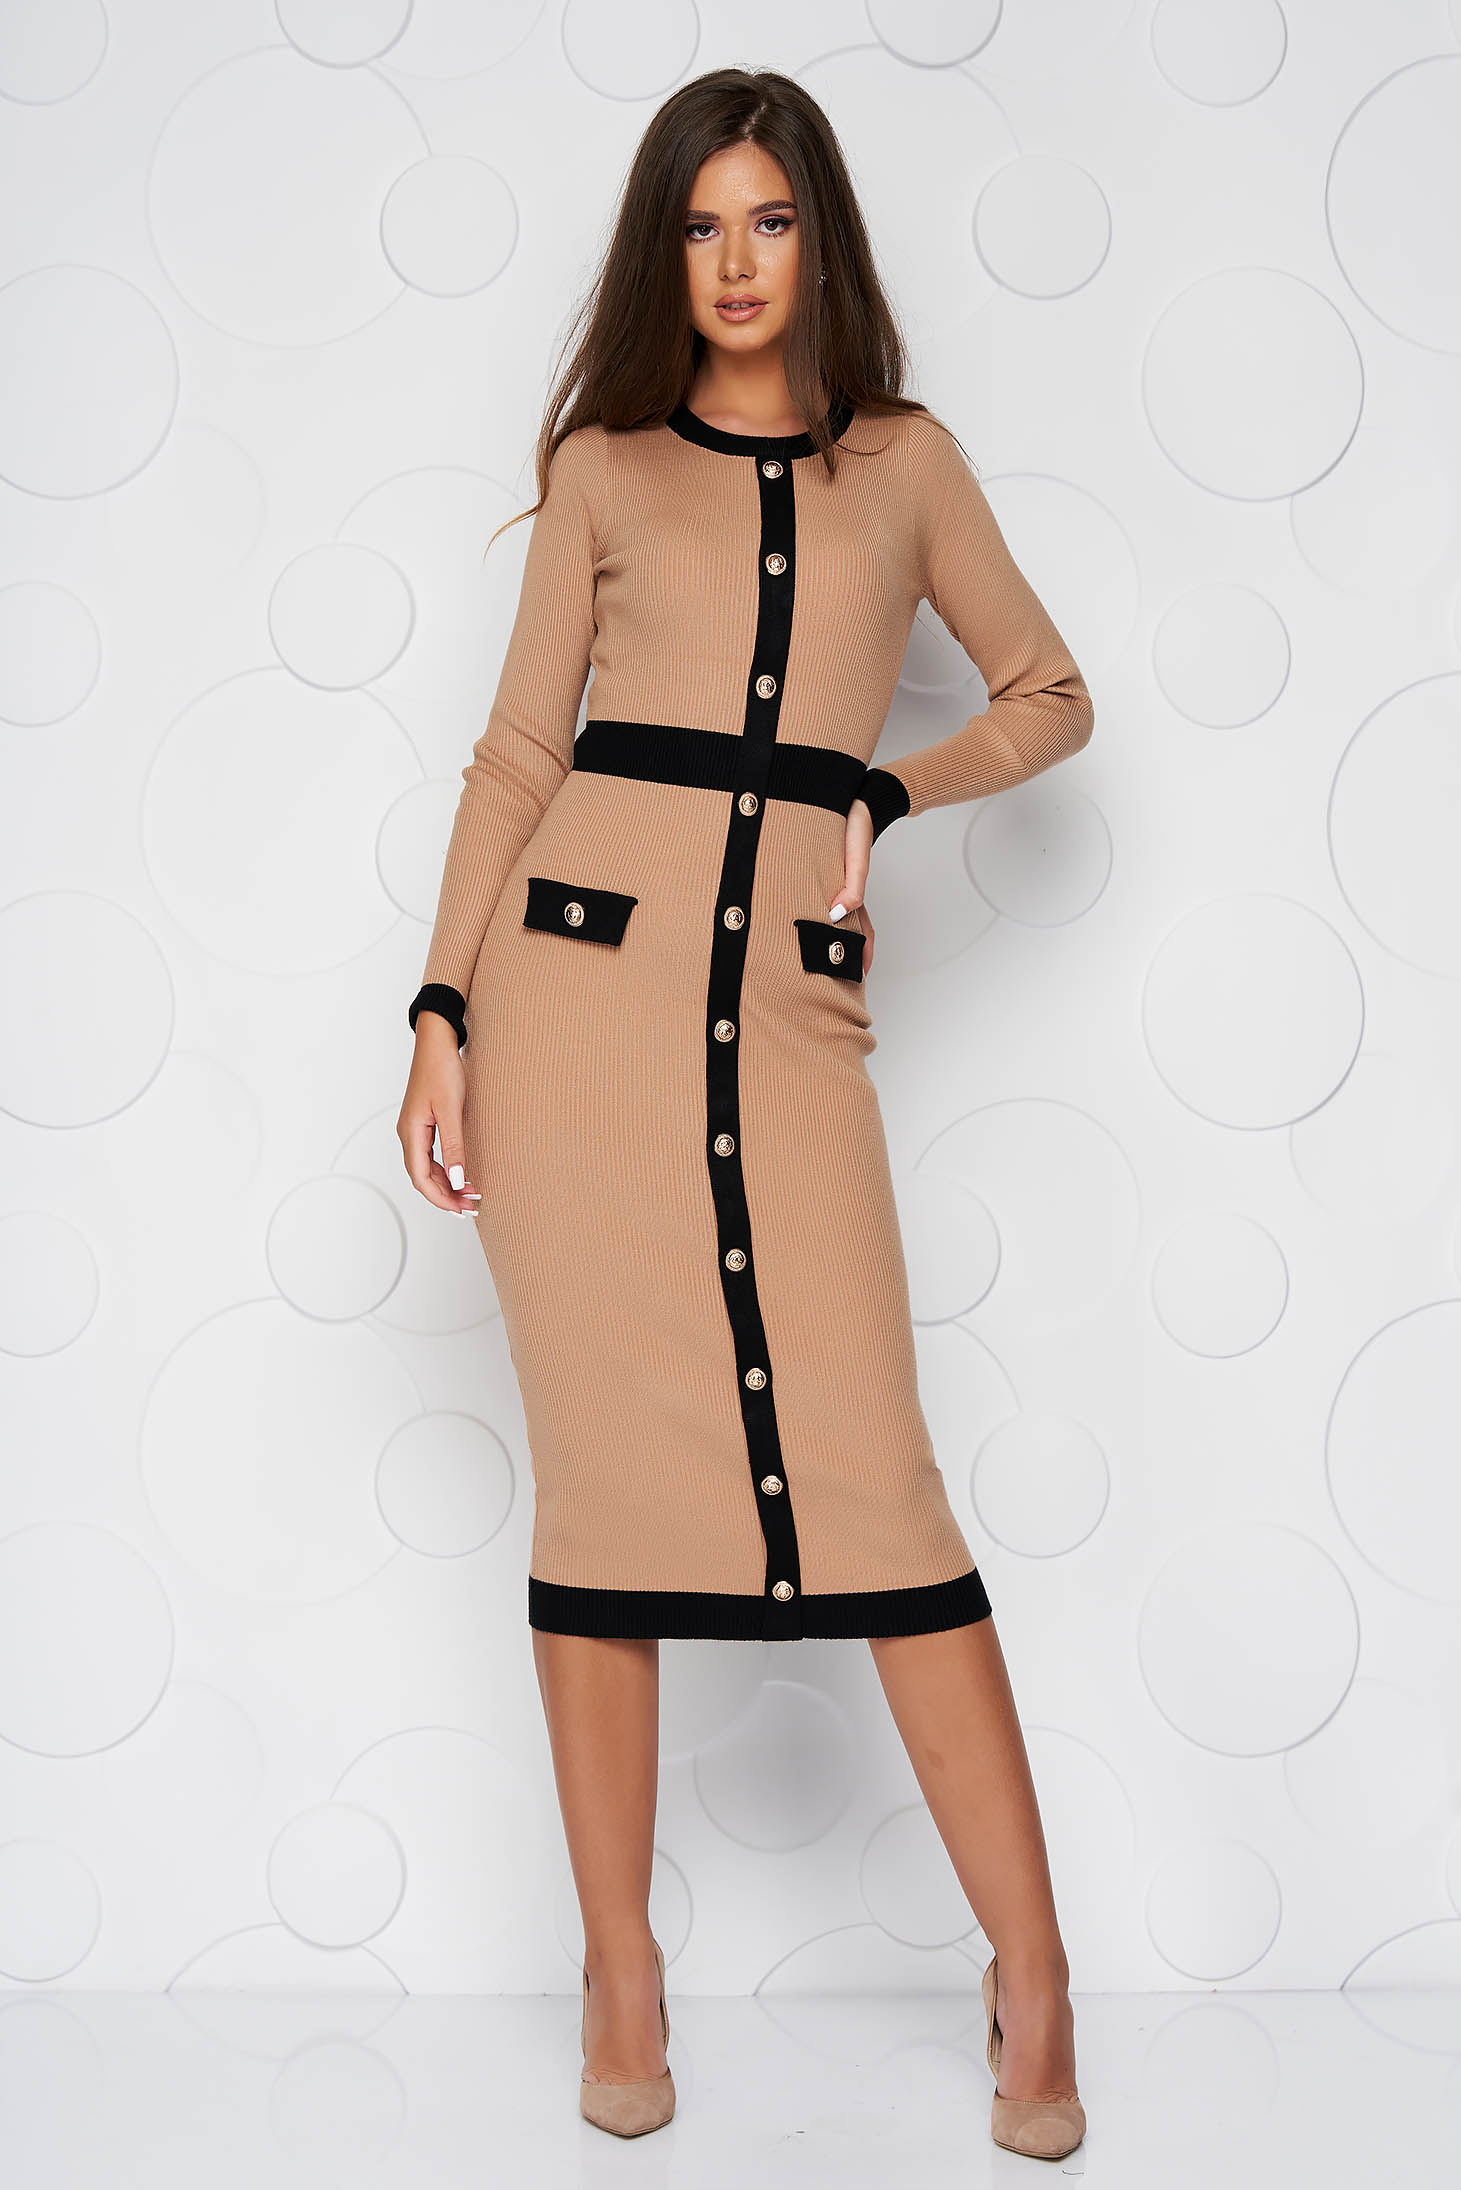 Brown dress with faux pockets pencil with button accessories knitted fabric midi